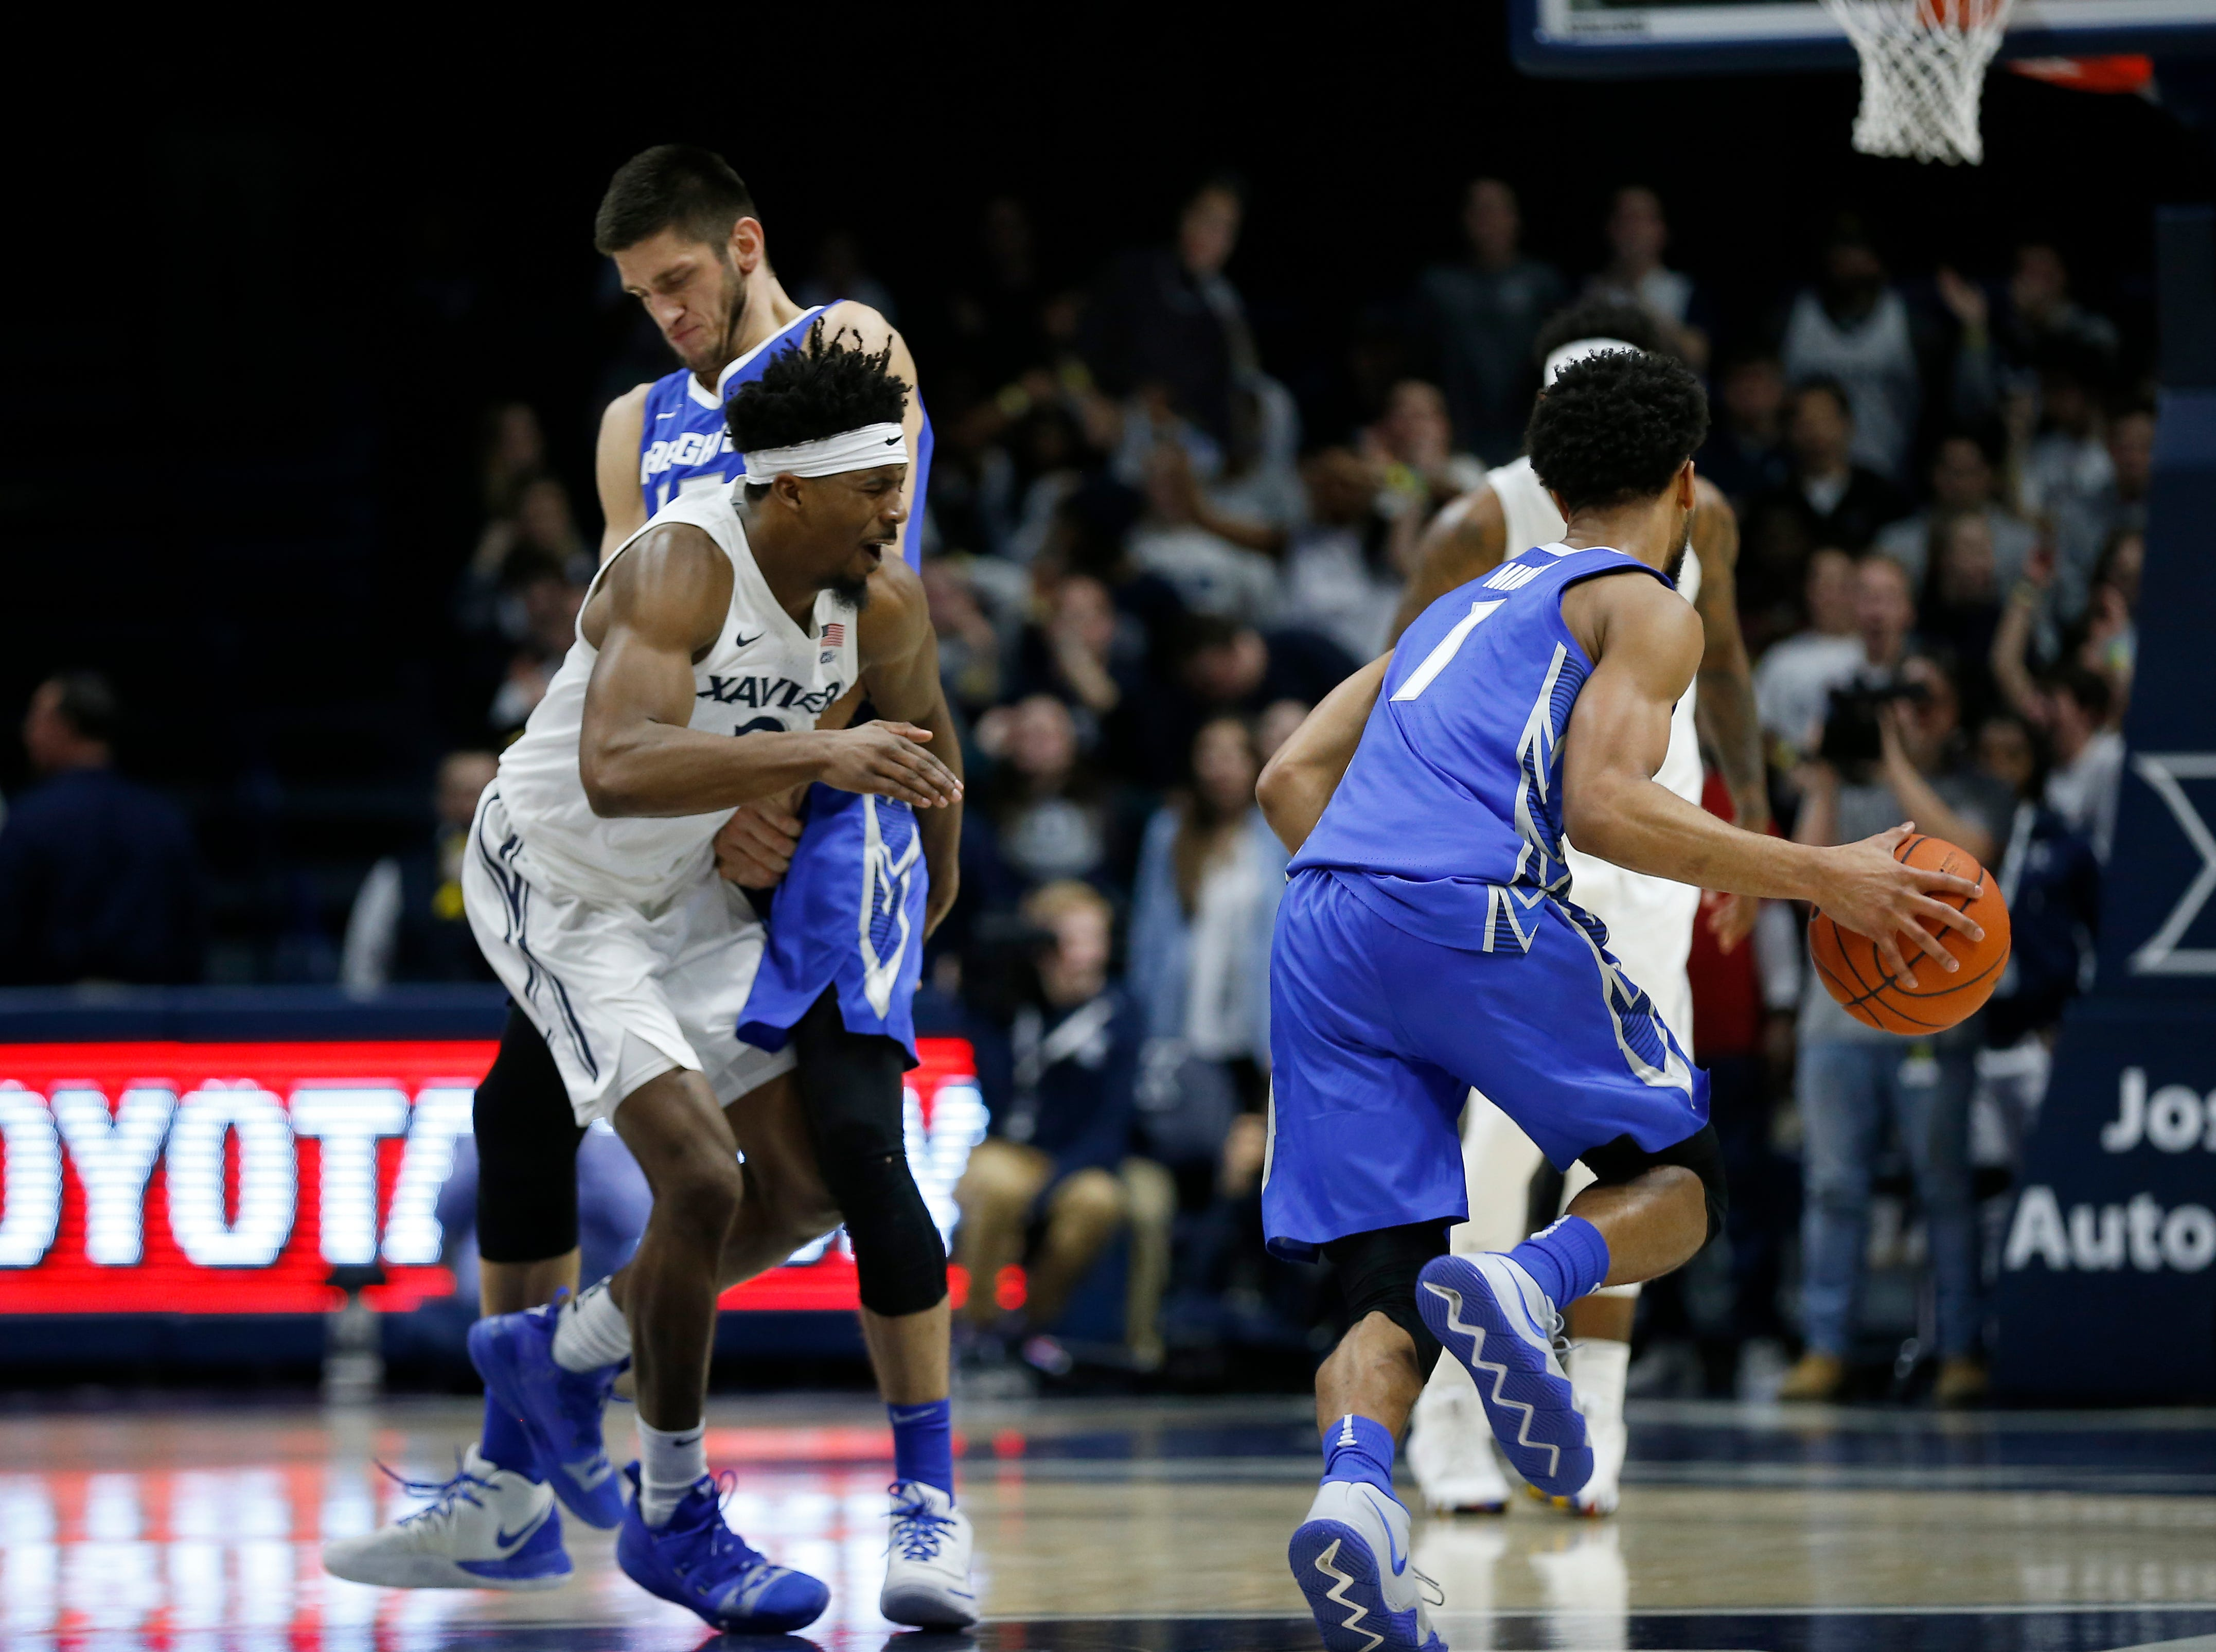 Xavier Musketeers guard Quentin Goodin (3) collides with a pick set by Creighton Bluejays forward Martin Krampelj (15) in the second half of the NCAA Big East Conference basketball game between the Xavier Musketeers and the Creighton Bluejays at Xavier's Cintas Center in Cincinnati on Thursday, Feb. 14, 2019. Xavier broke a 6-game losing streak with a 64-61 overtime win over Creighton.